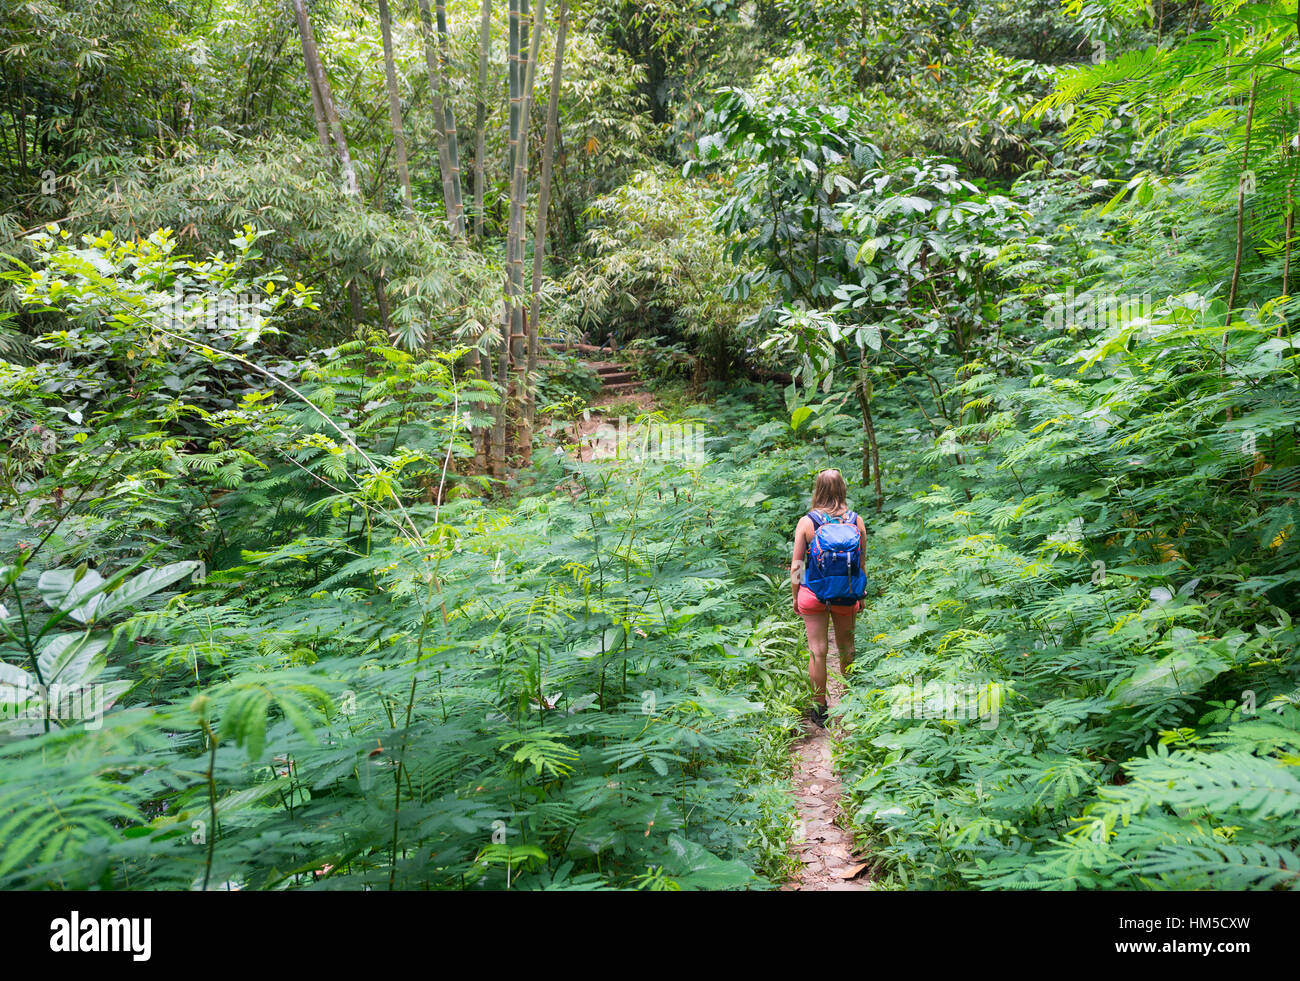 Hiker walking on trail through dense vegetation, Munduk, Bali, Indonesia - Stock Image